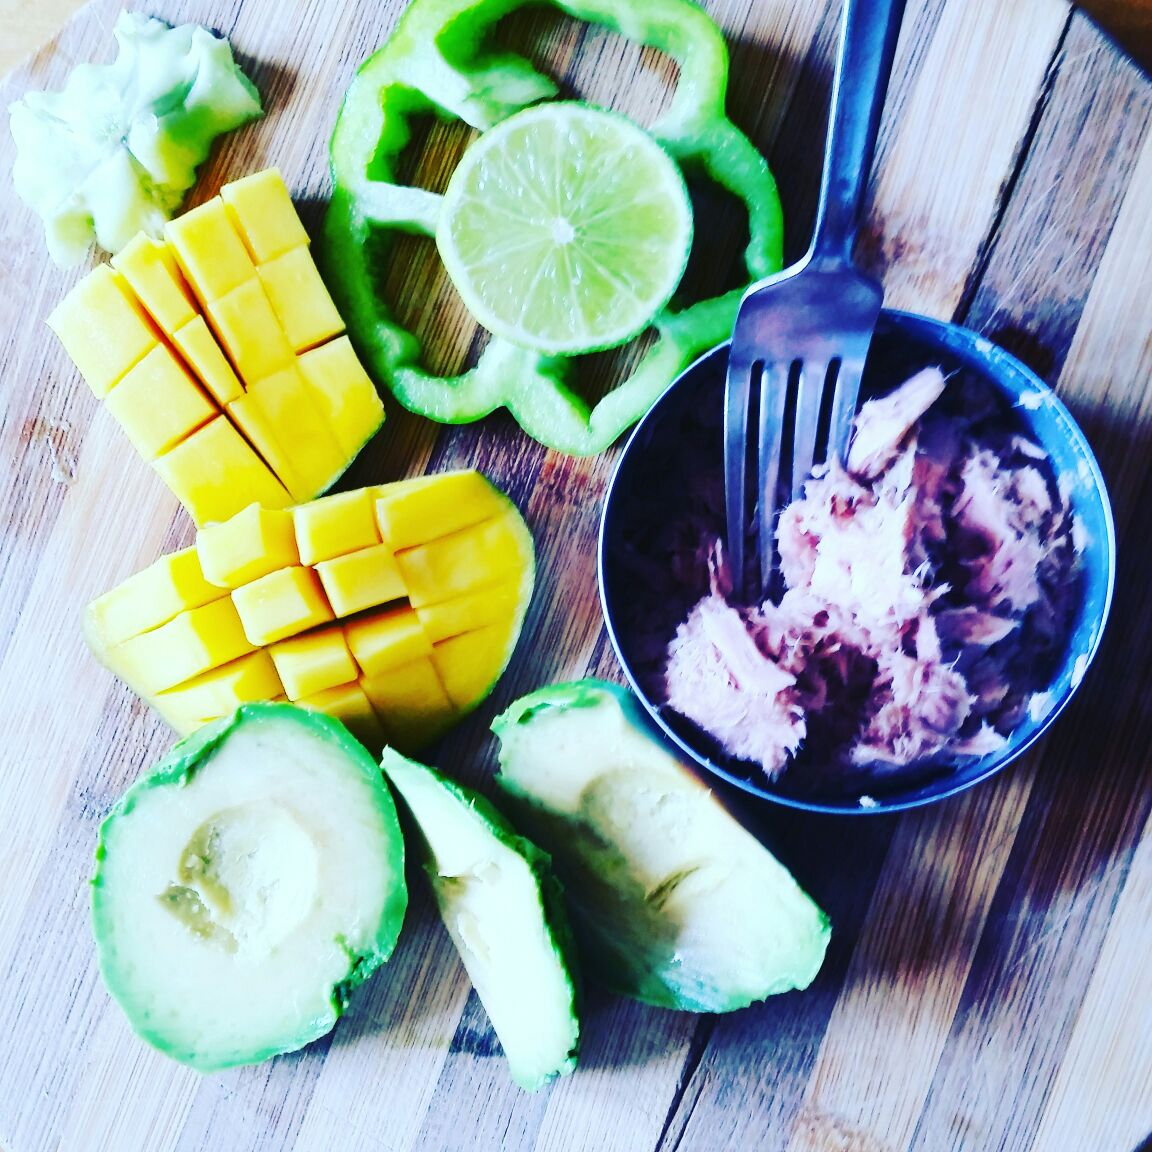 Real Simple - Tuna, Avocado, Mango & Green Pepper. EAT FOR FUEL!!!